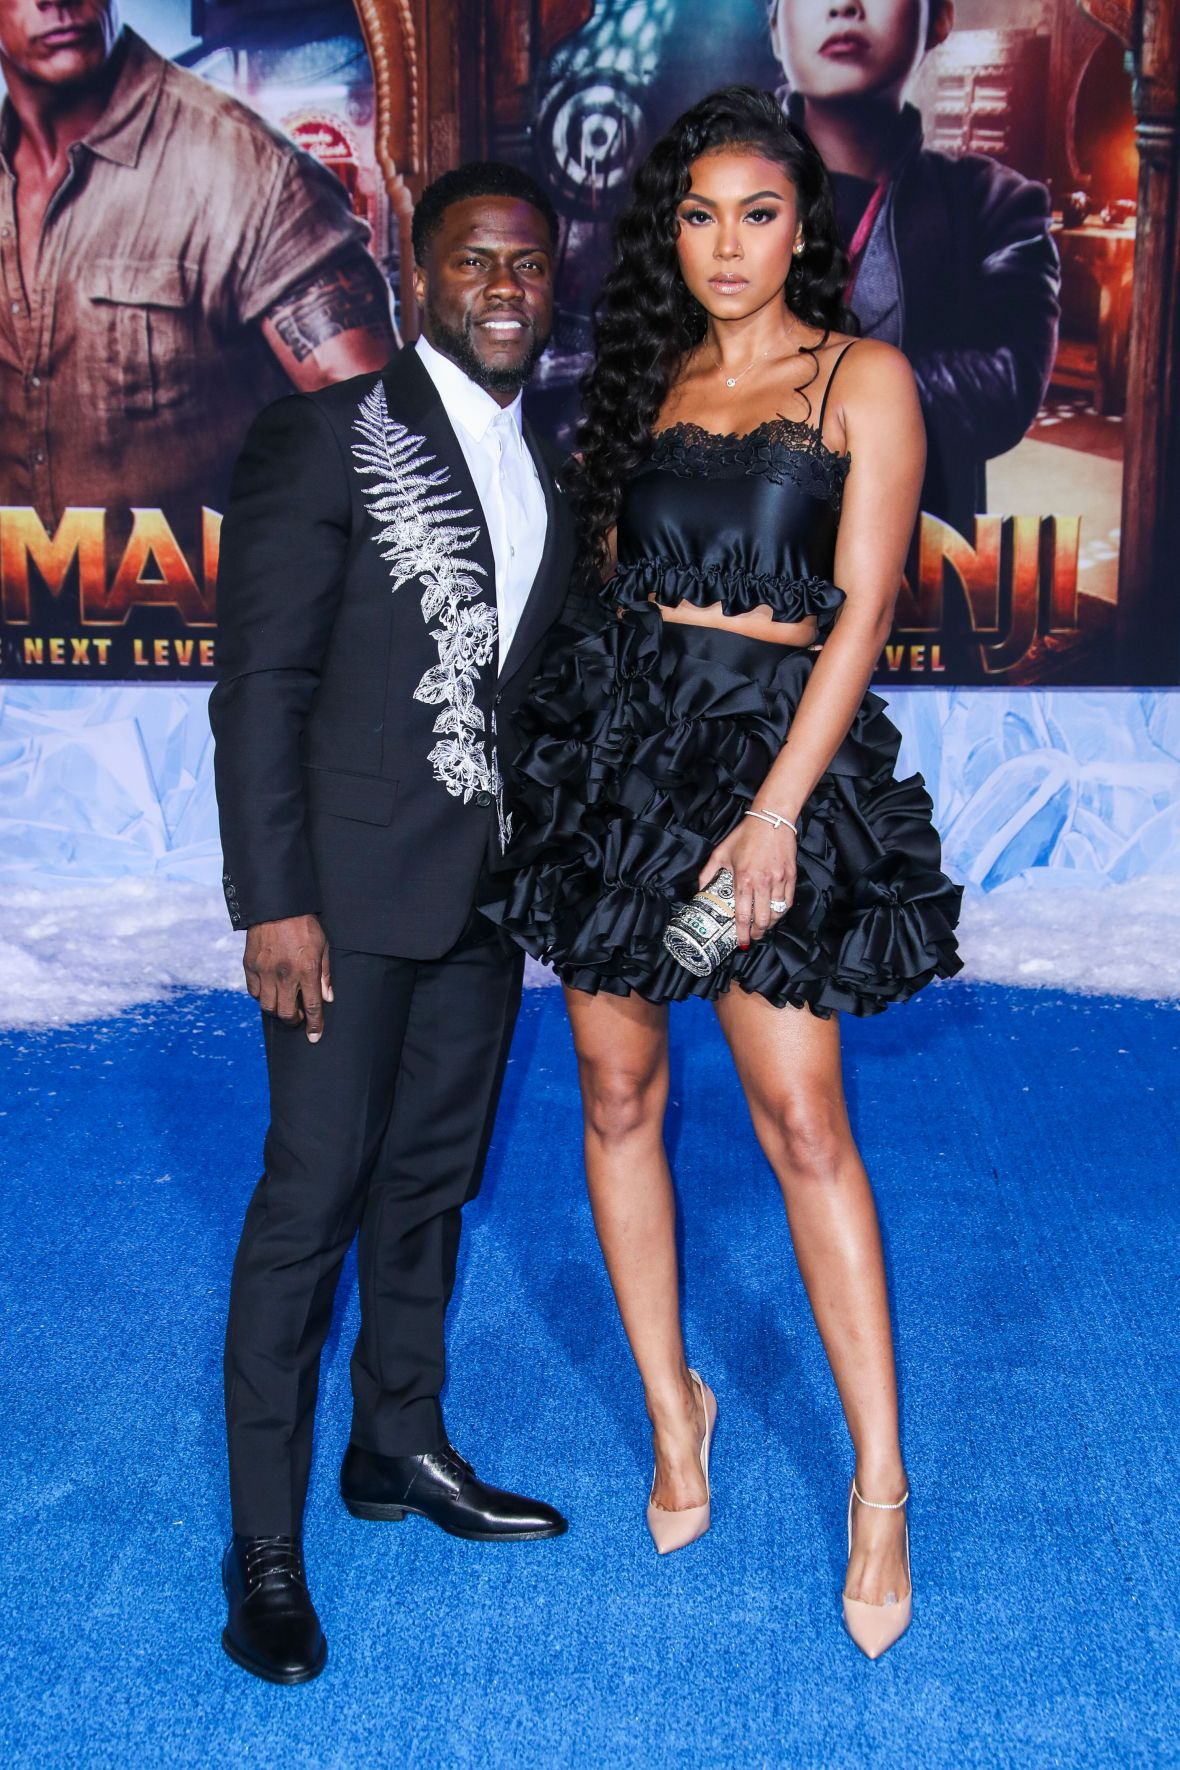 Kevin and Eniko